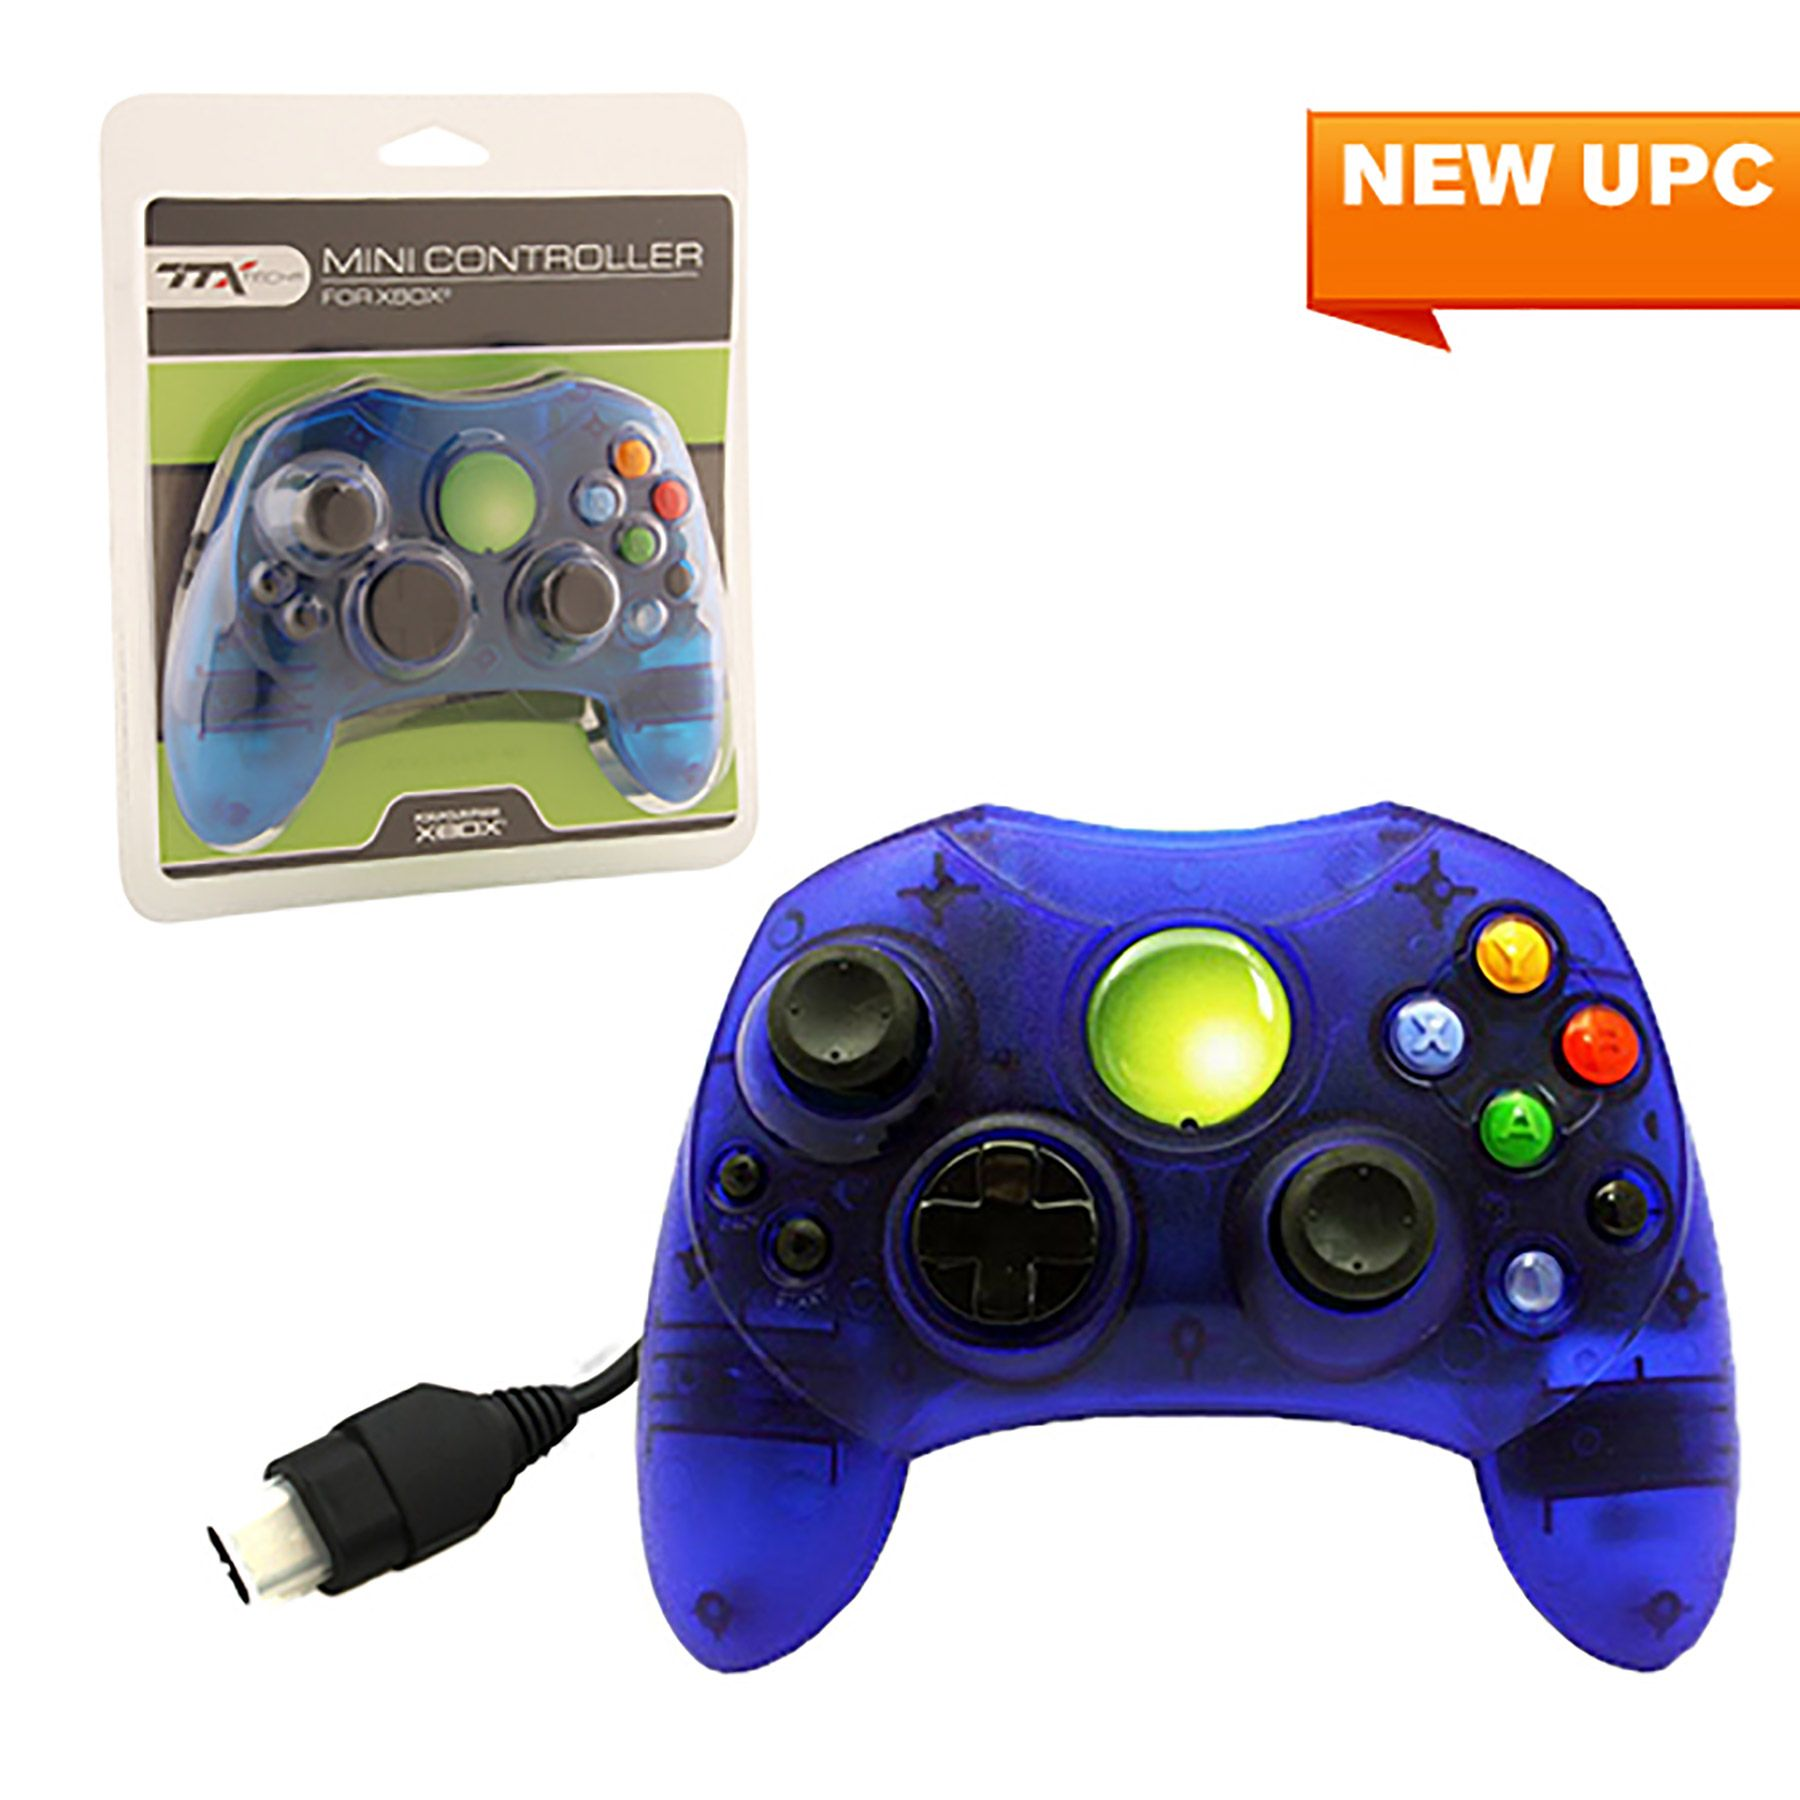 Clear blue wired controller for xbox ttx tech https